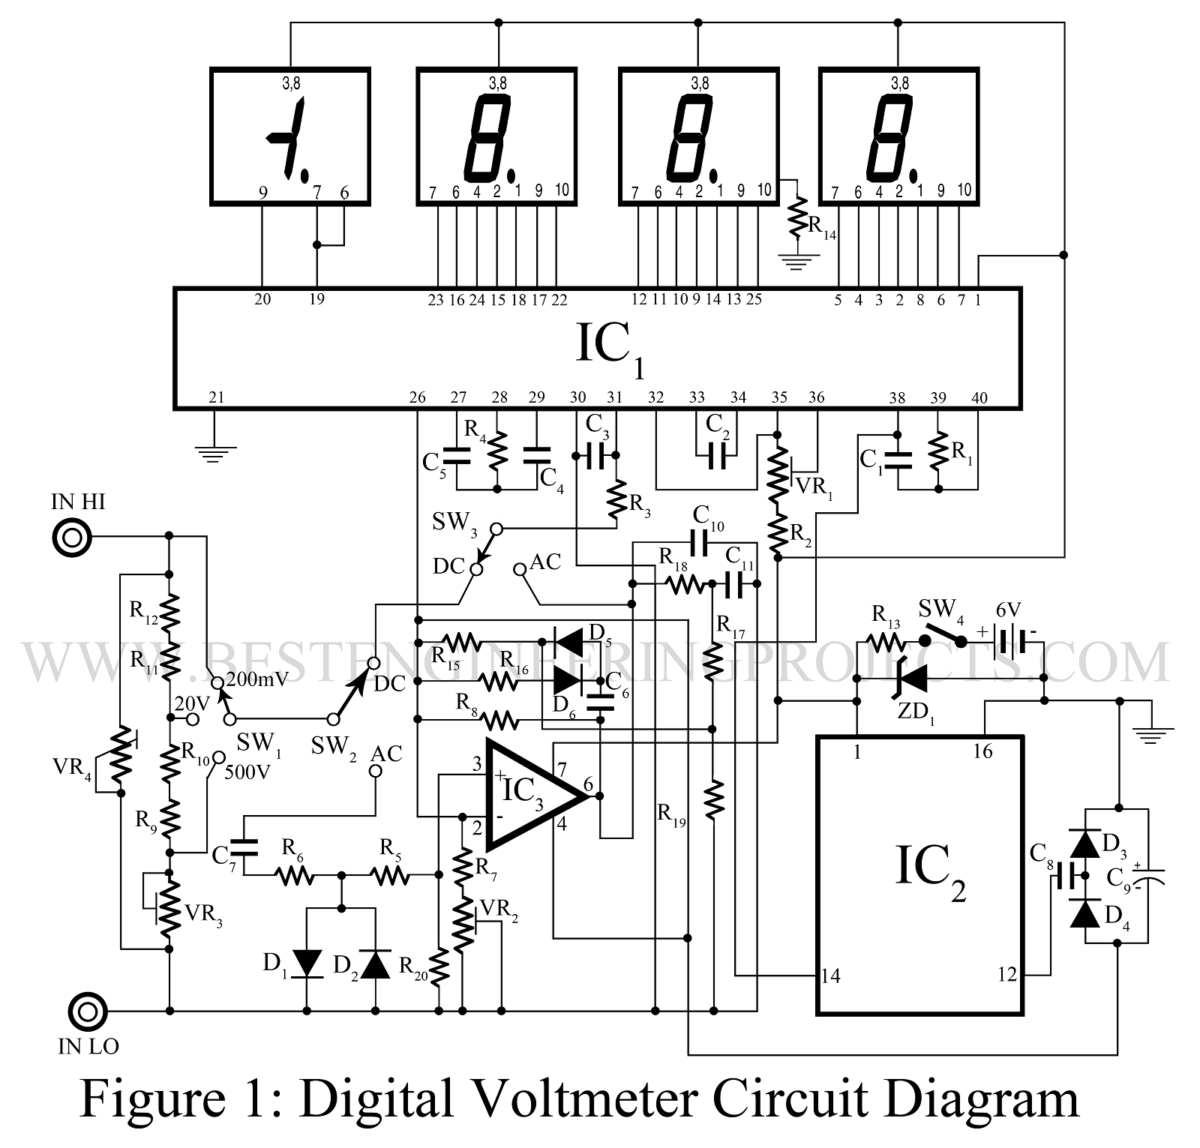 Digital Voltmeter Dvm Circuit Using Icl